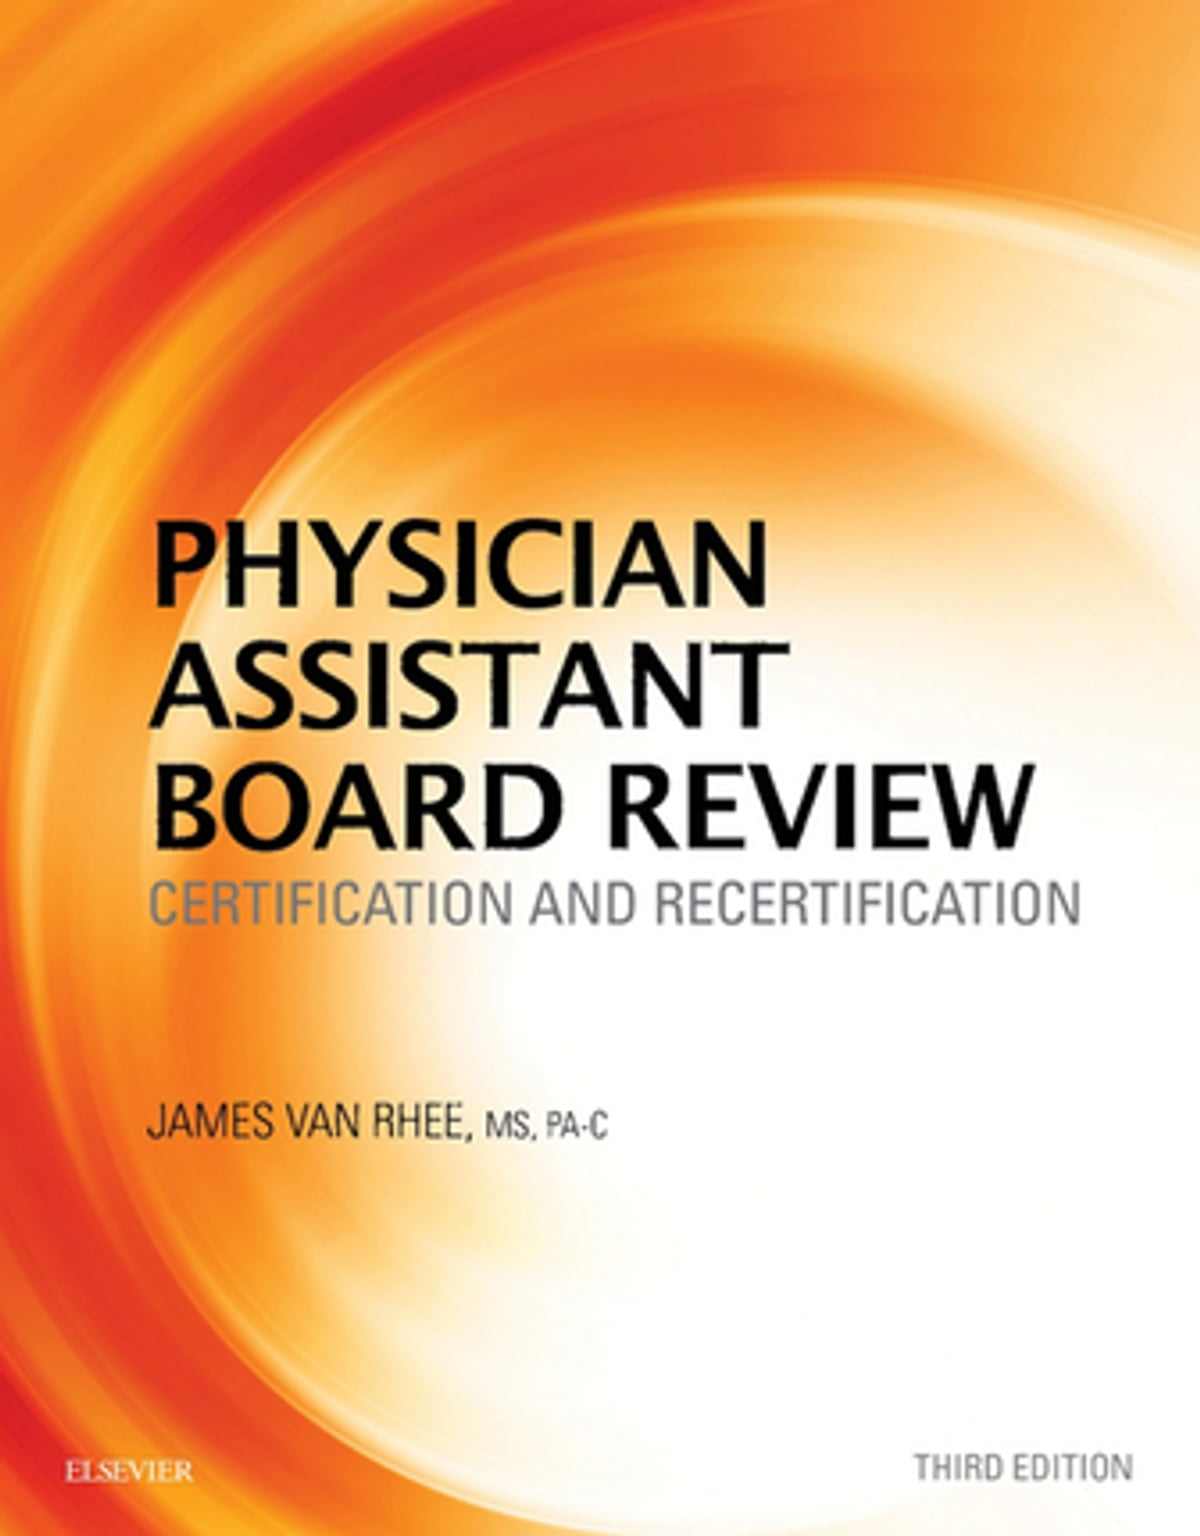 Physician Assistant Board Review Ebook By James Van Rhee Ms Pa C